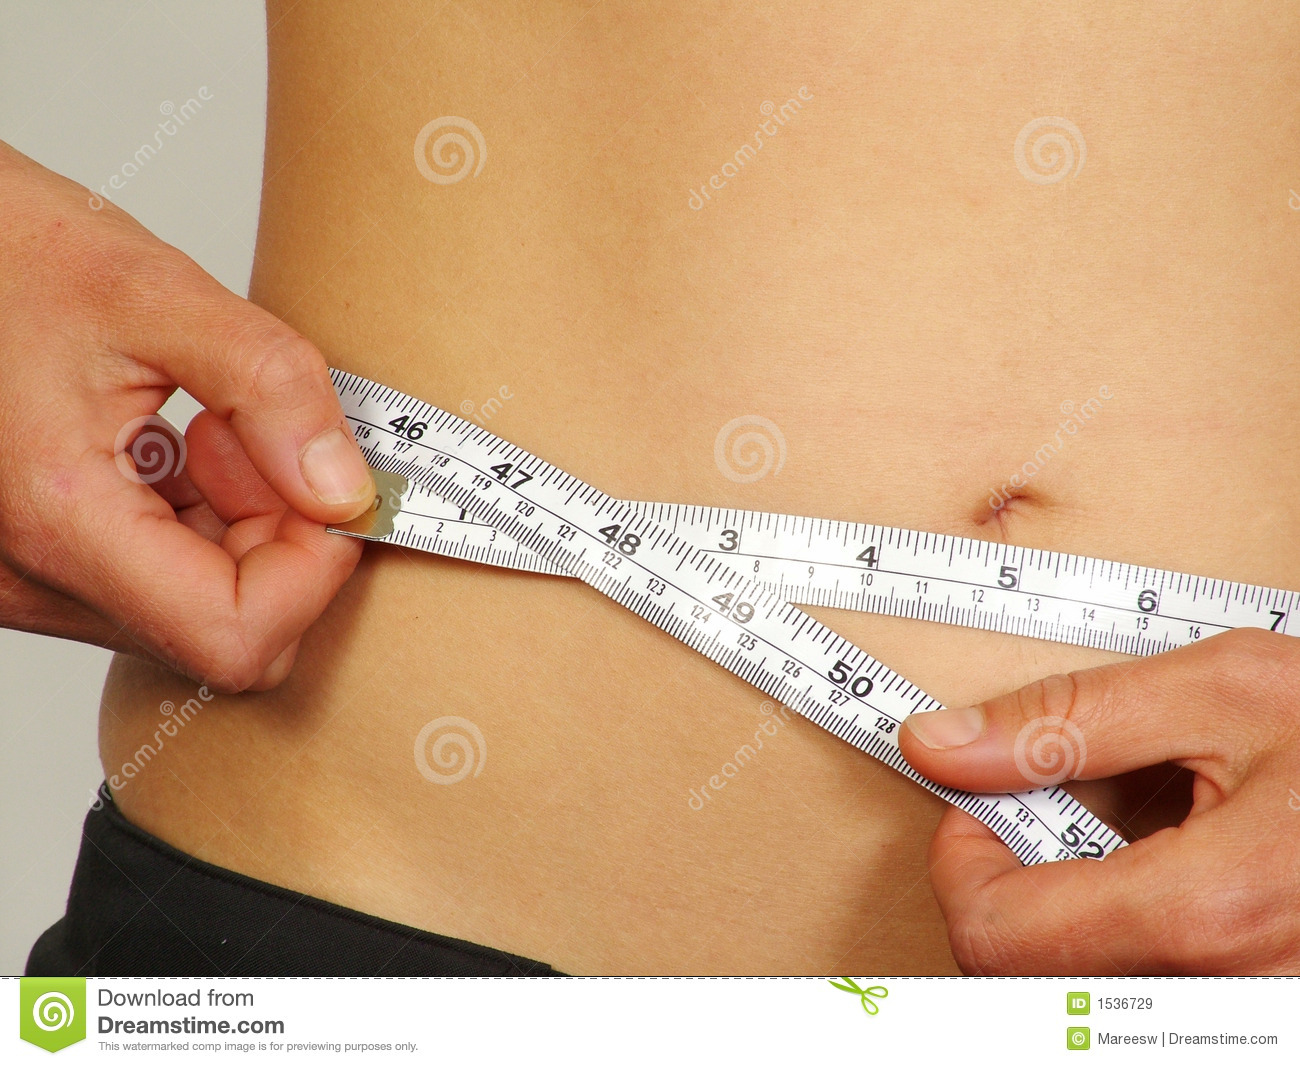 weight loss body measurement